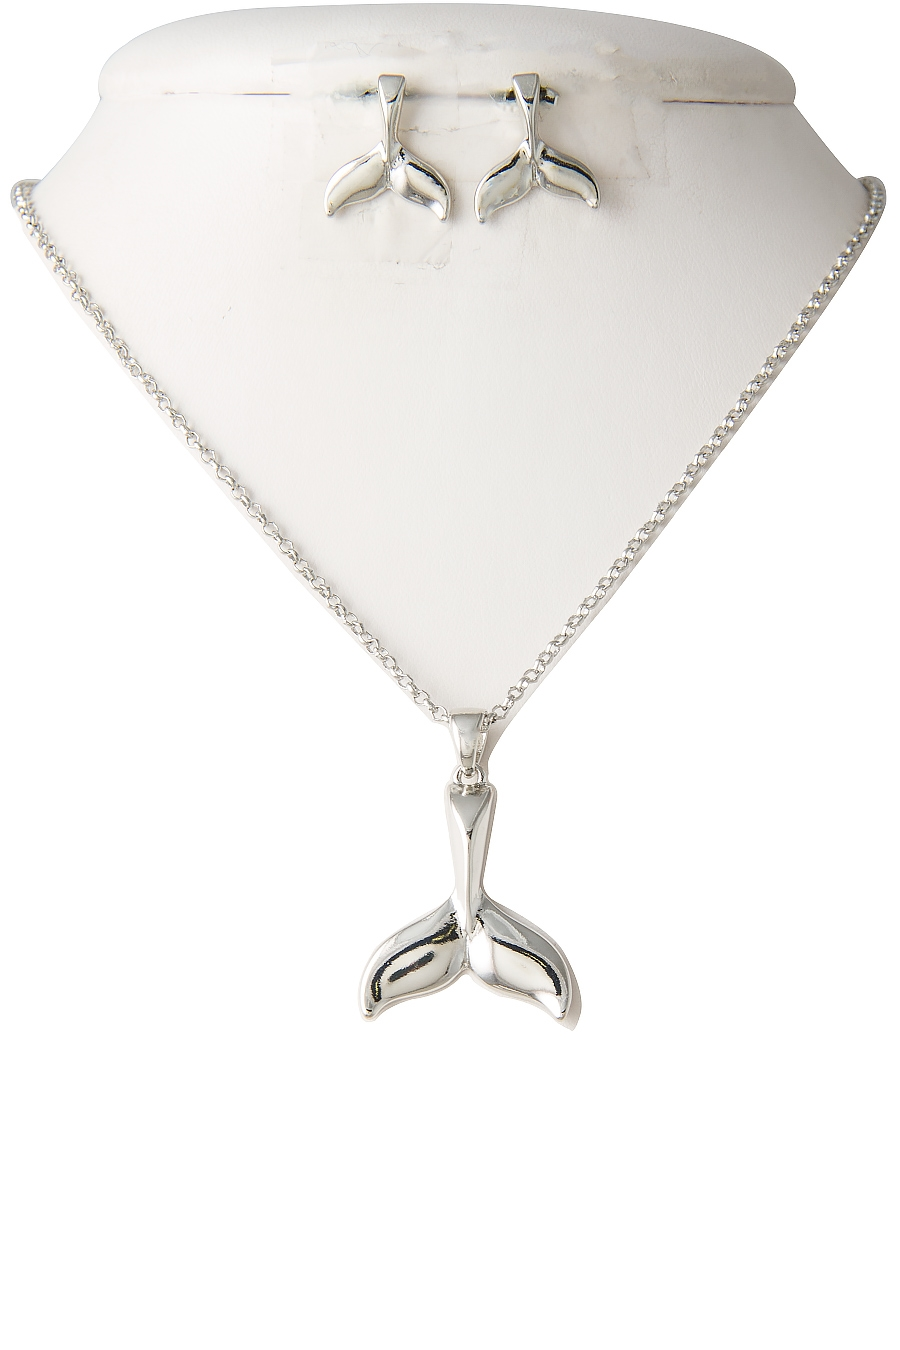 WHALE TAIL PENDANT NECKLACE - orangeshine.com